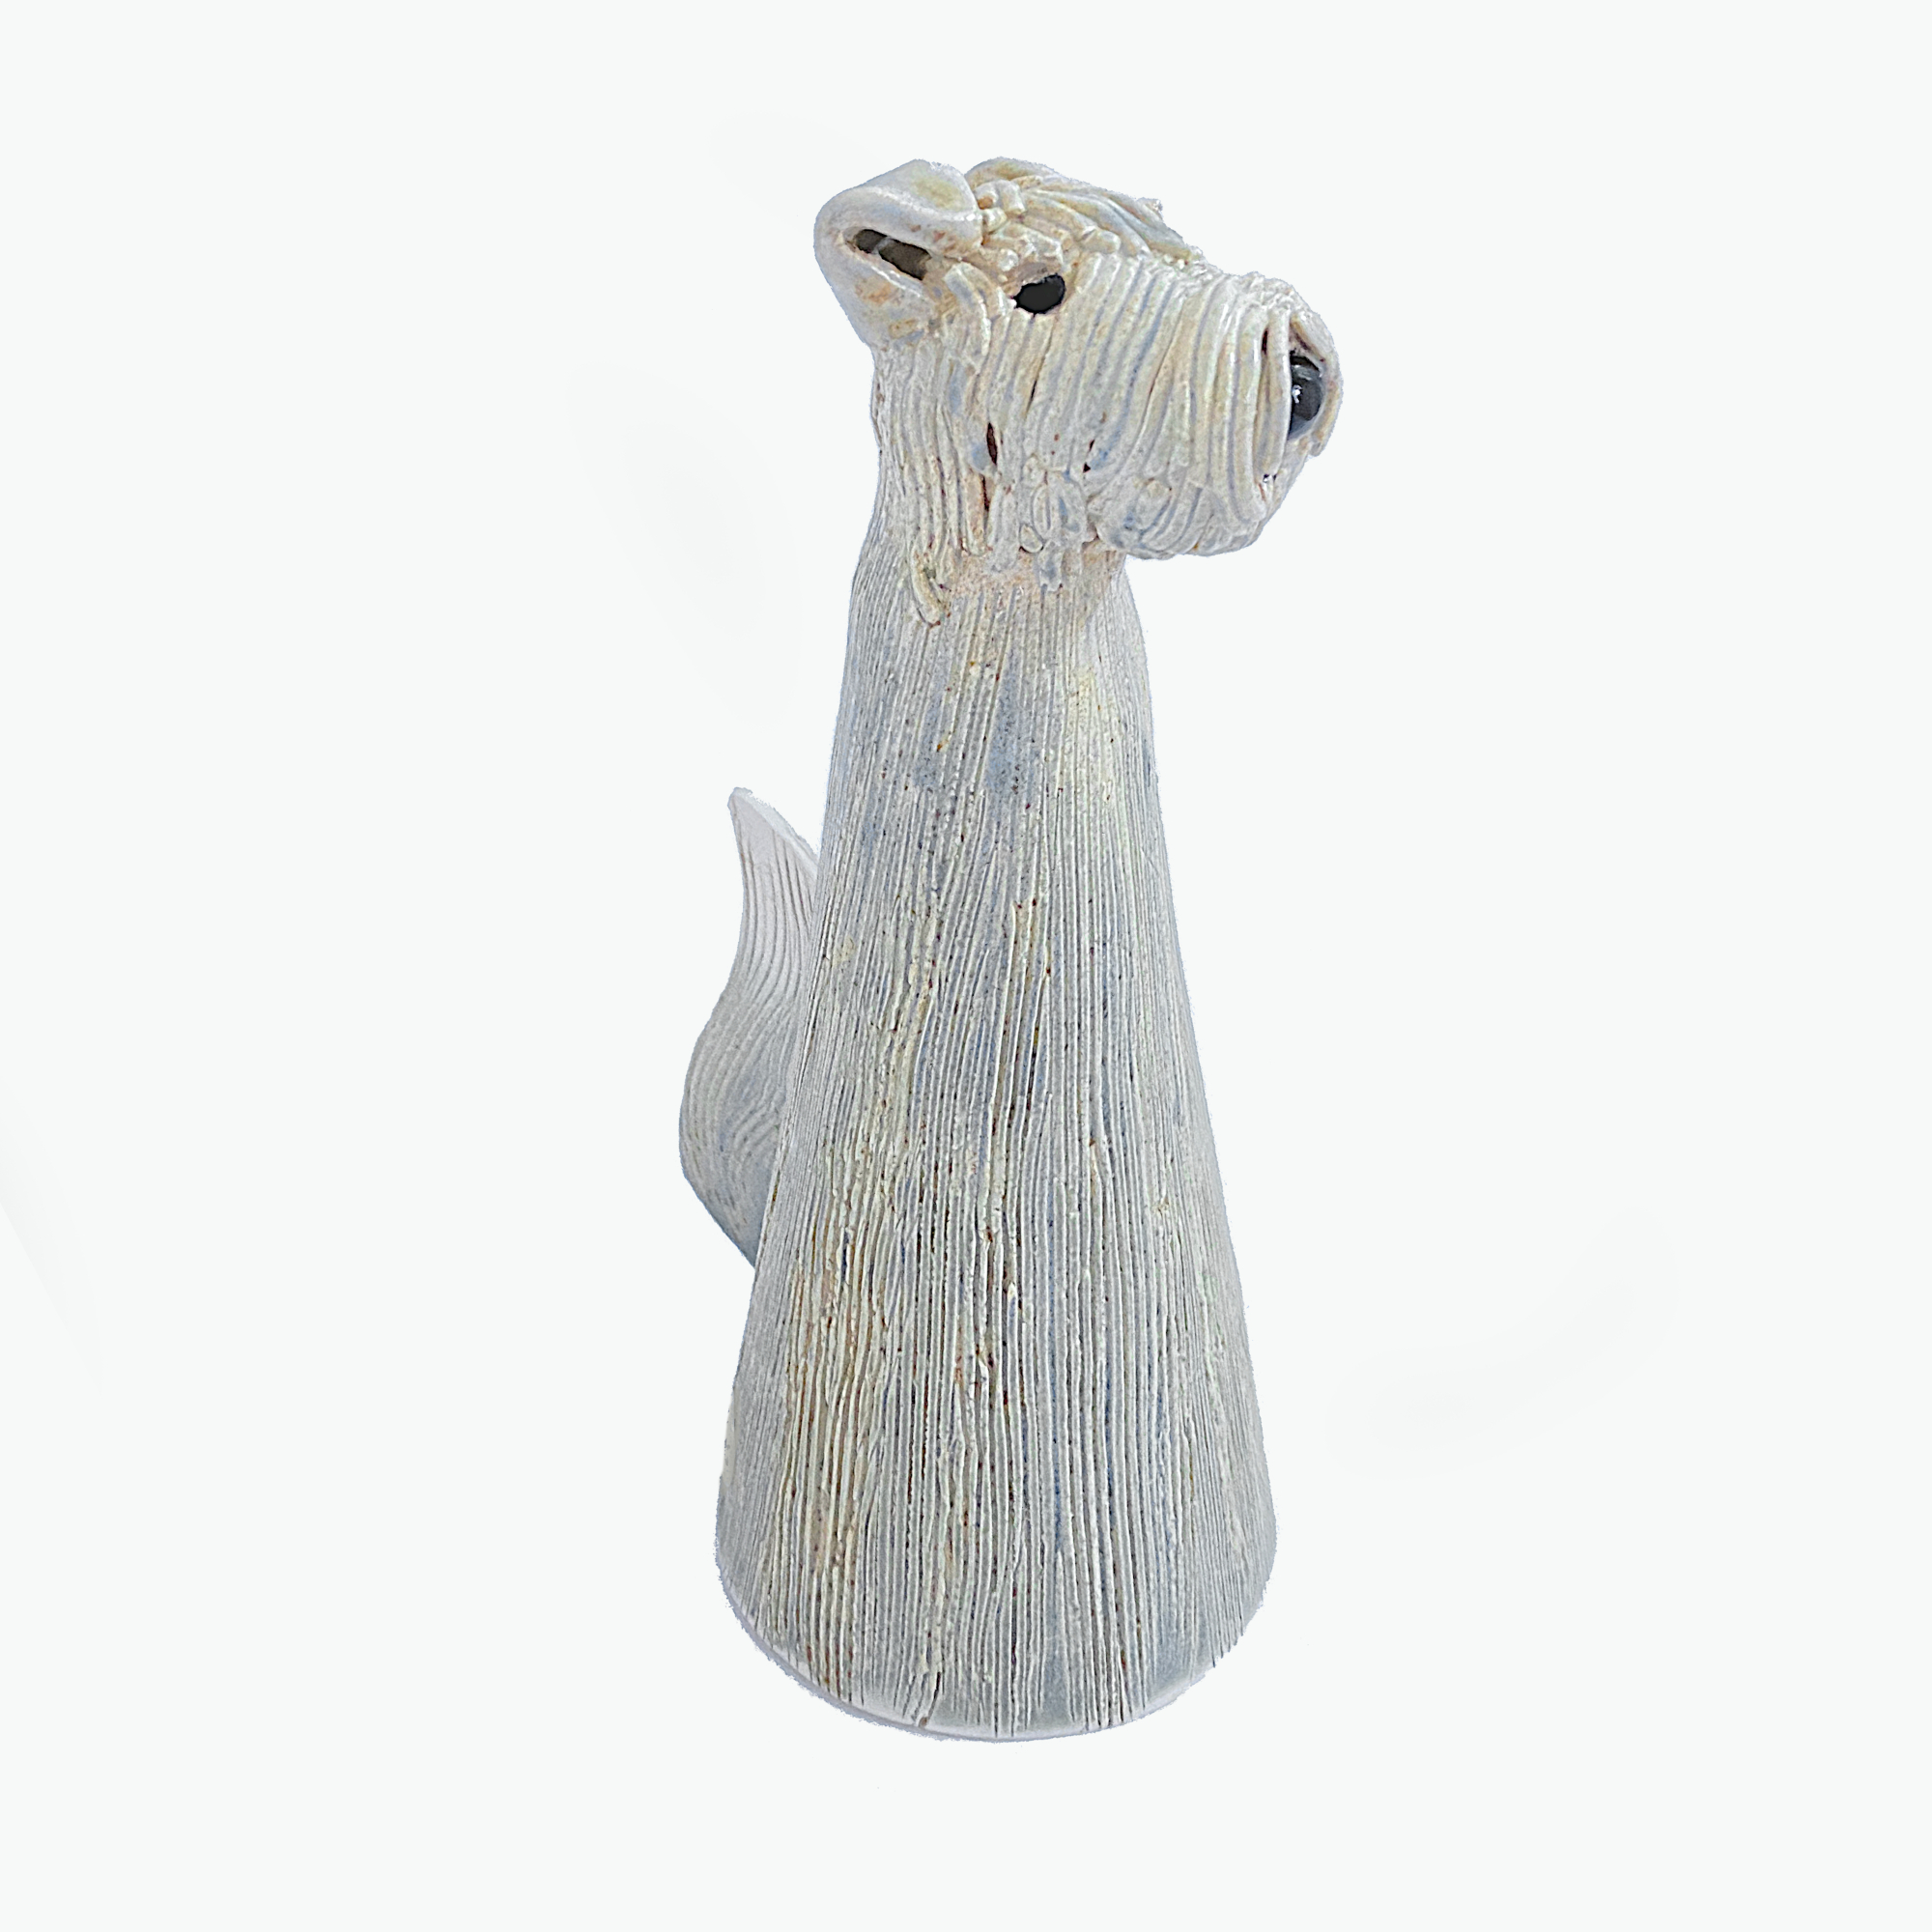 Ceramic Dog, Kathy Mooney